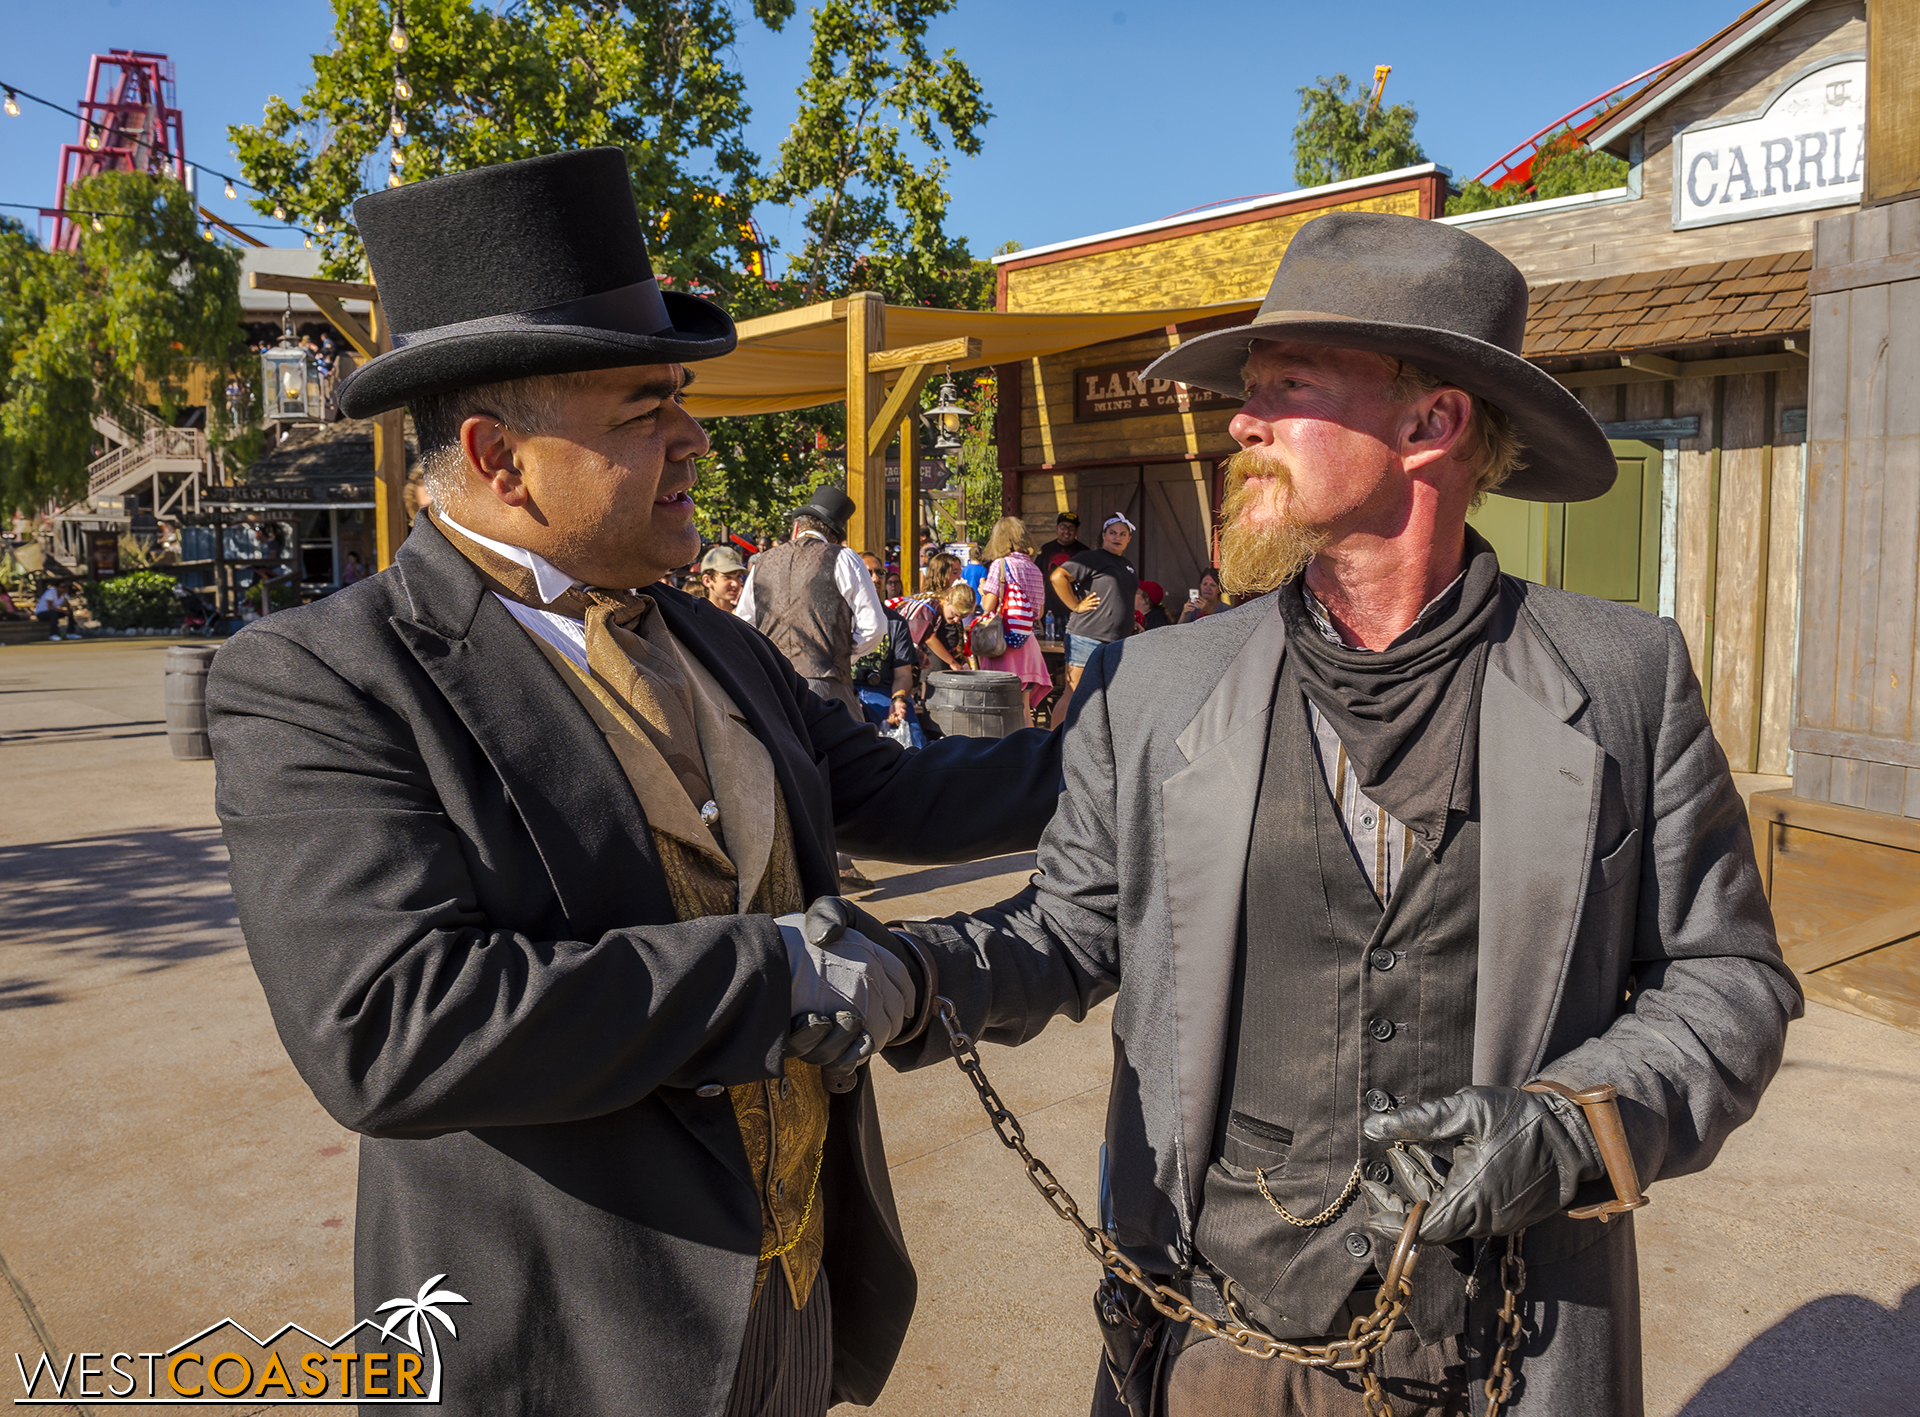 Folks start to gather at Calico Park around 5:30. Here, Mayor Parnell chats with Clay Mayfield. It seems that even though there are villians and heroes, everyone still gets along with each other pretty well. (Plus, Clay ain't so bad this year... right?)